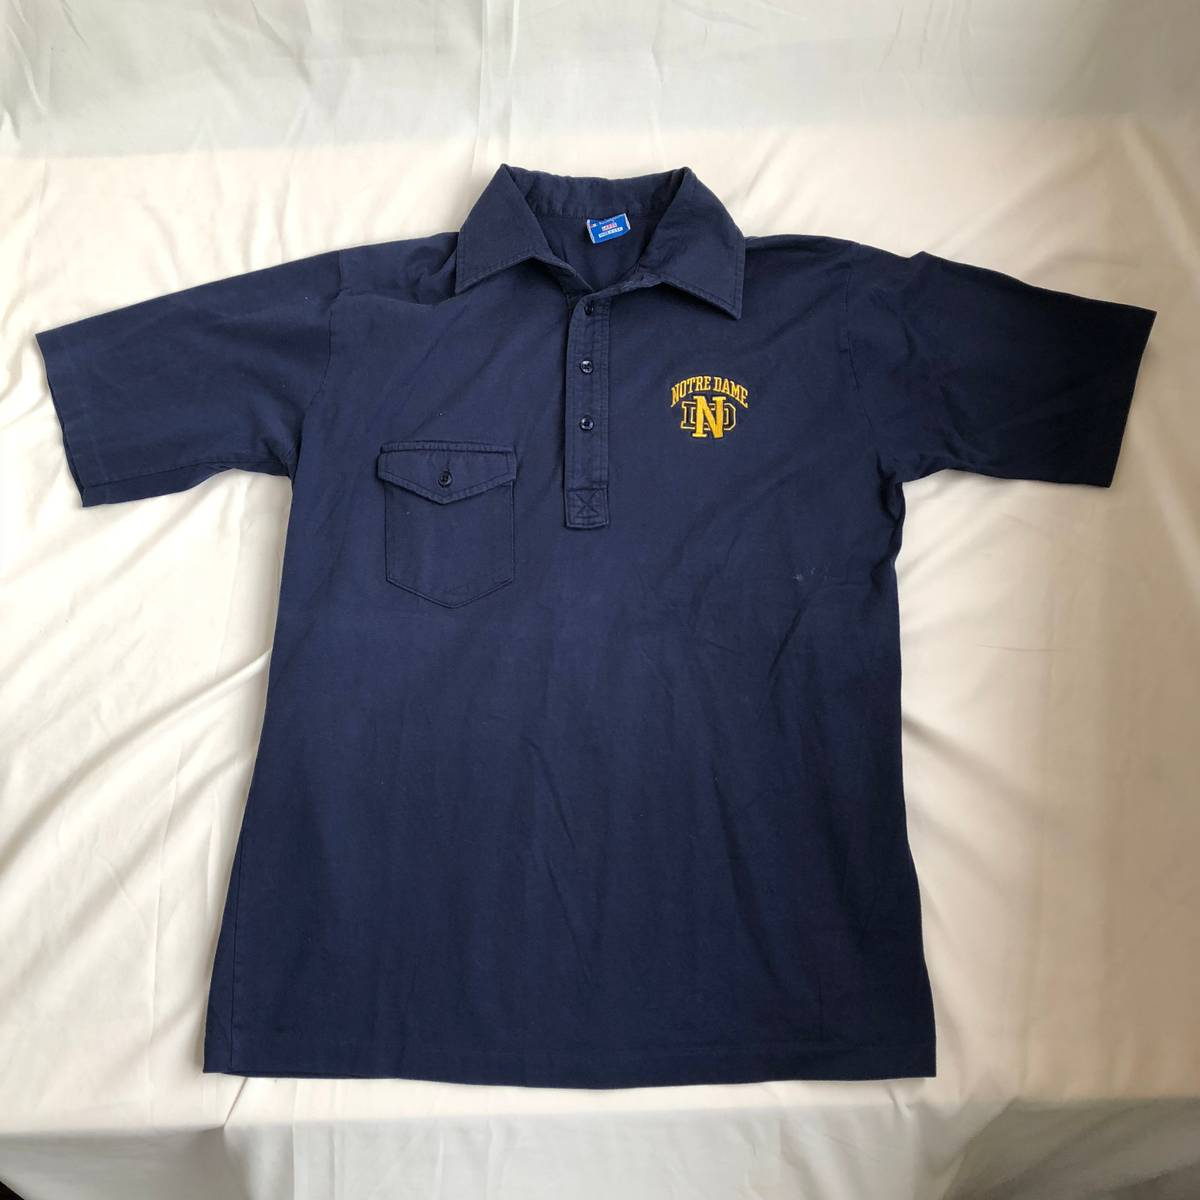 f08f2e74c Vintage Vtg Champion Notre Dame Polo Shirt Sz Large 80s/90s Navy Blue Usa  Made Stitched | Grailed